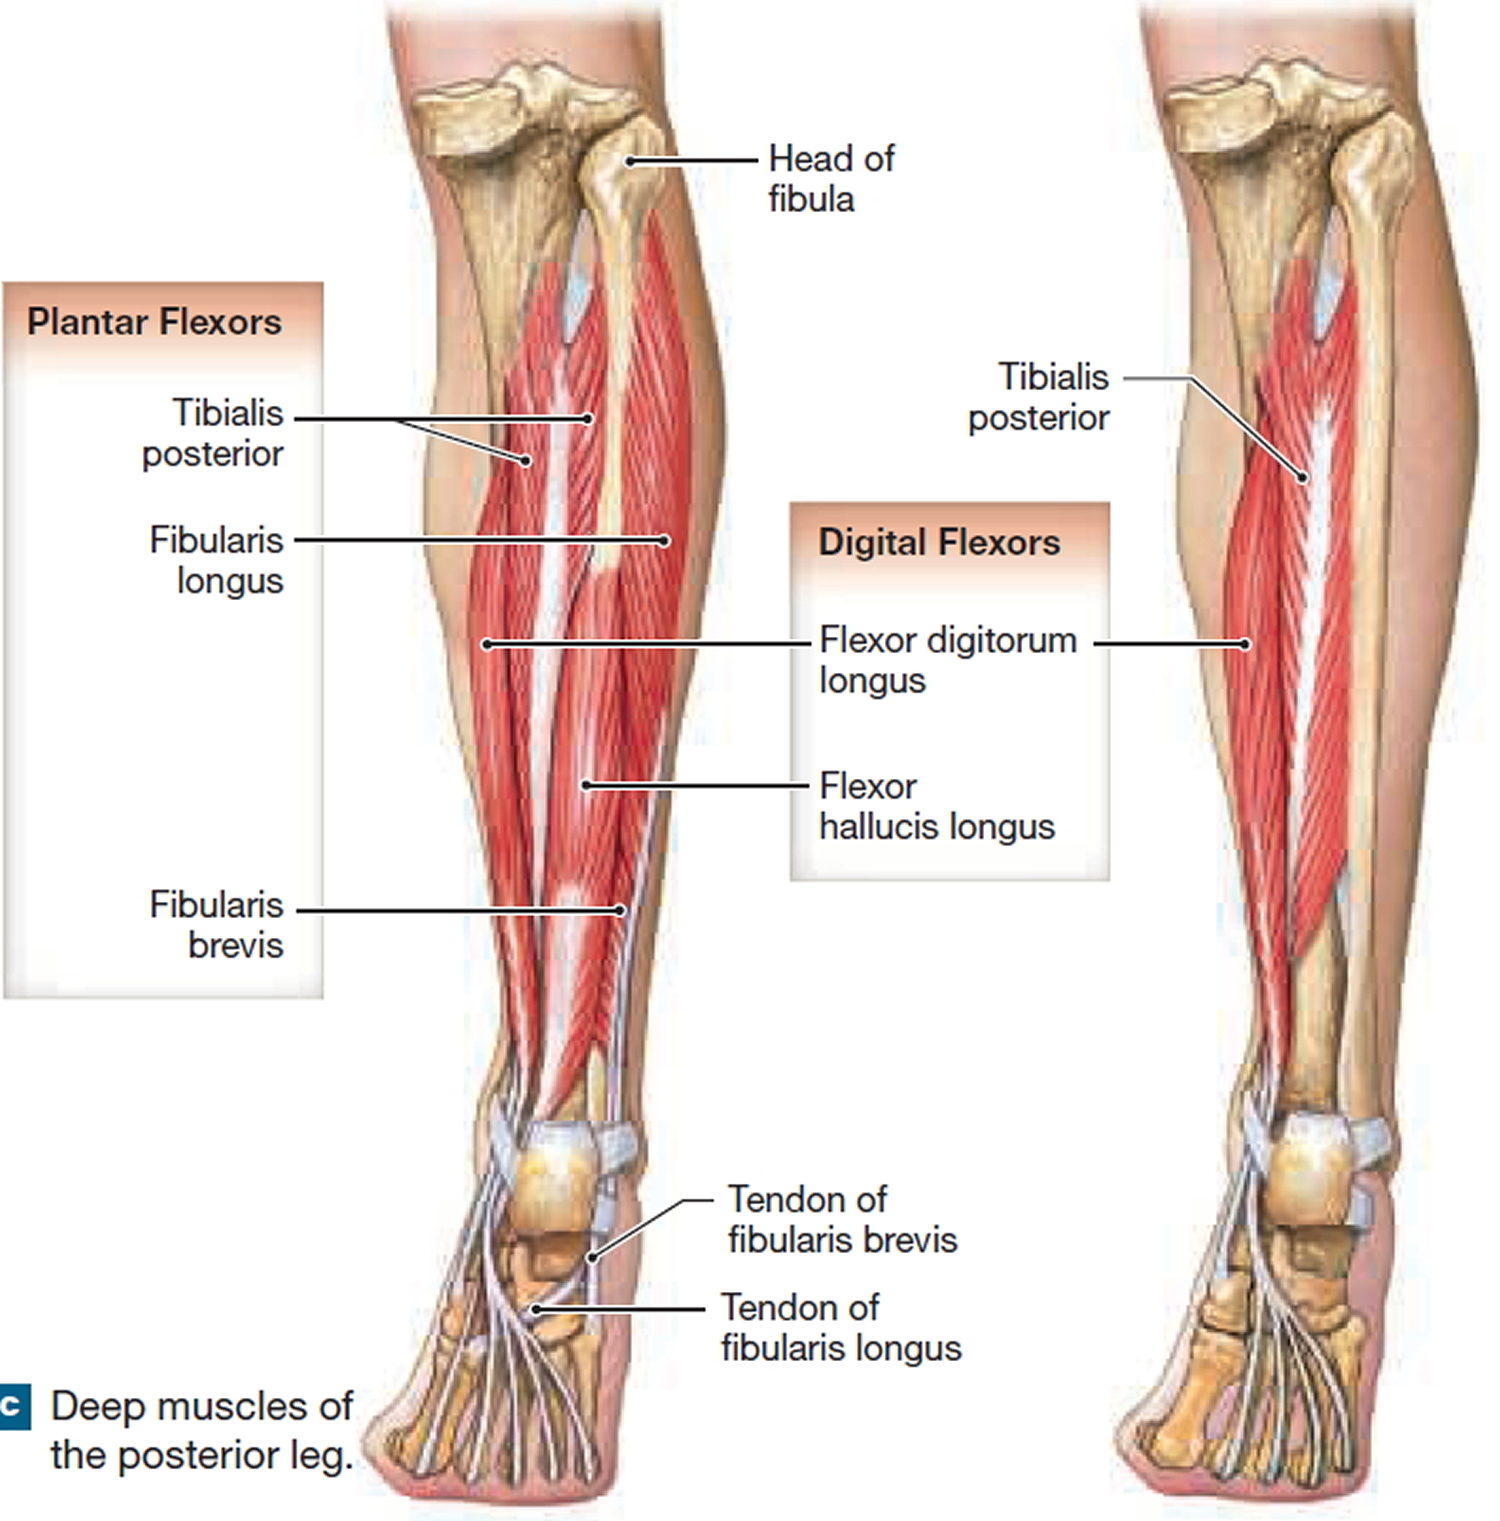 muscles that move the leg and foot - deep muscles